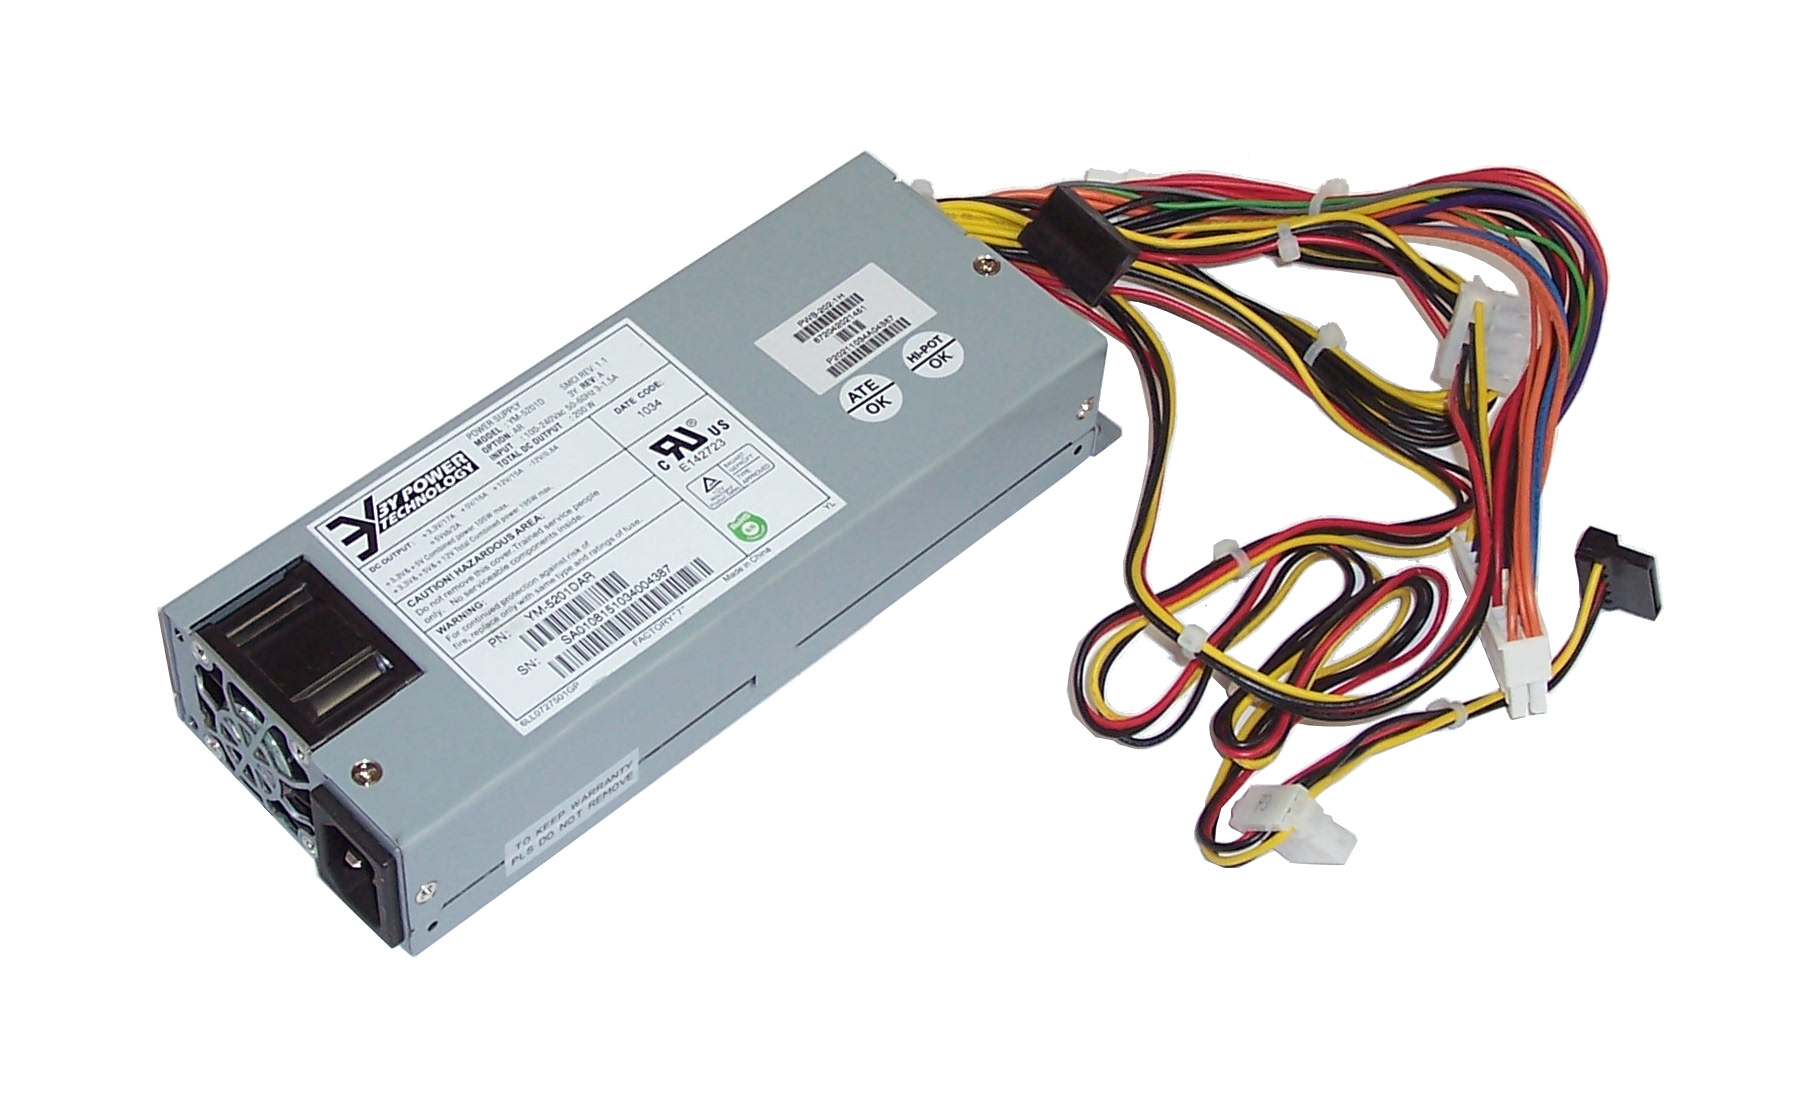 SuperMicro PWS-202-1H Model: YM-5201D 200W Power Supply- 3Y Power P/N:YM-5201DAR